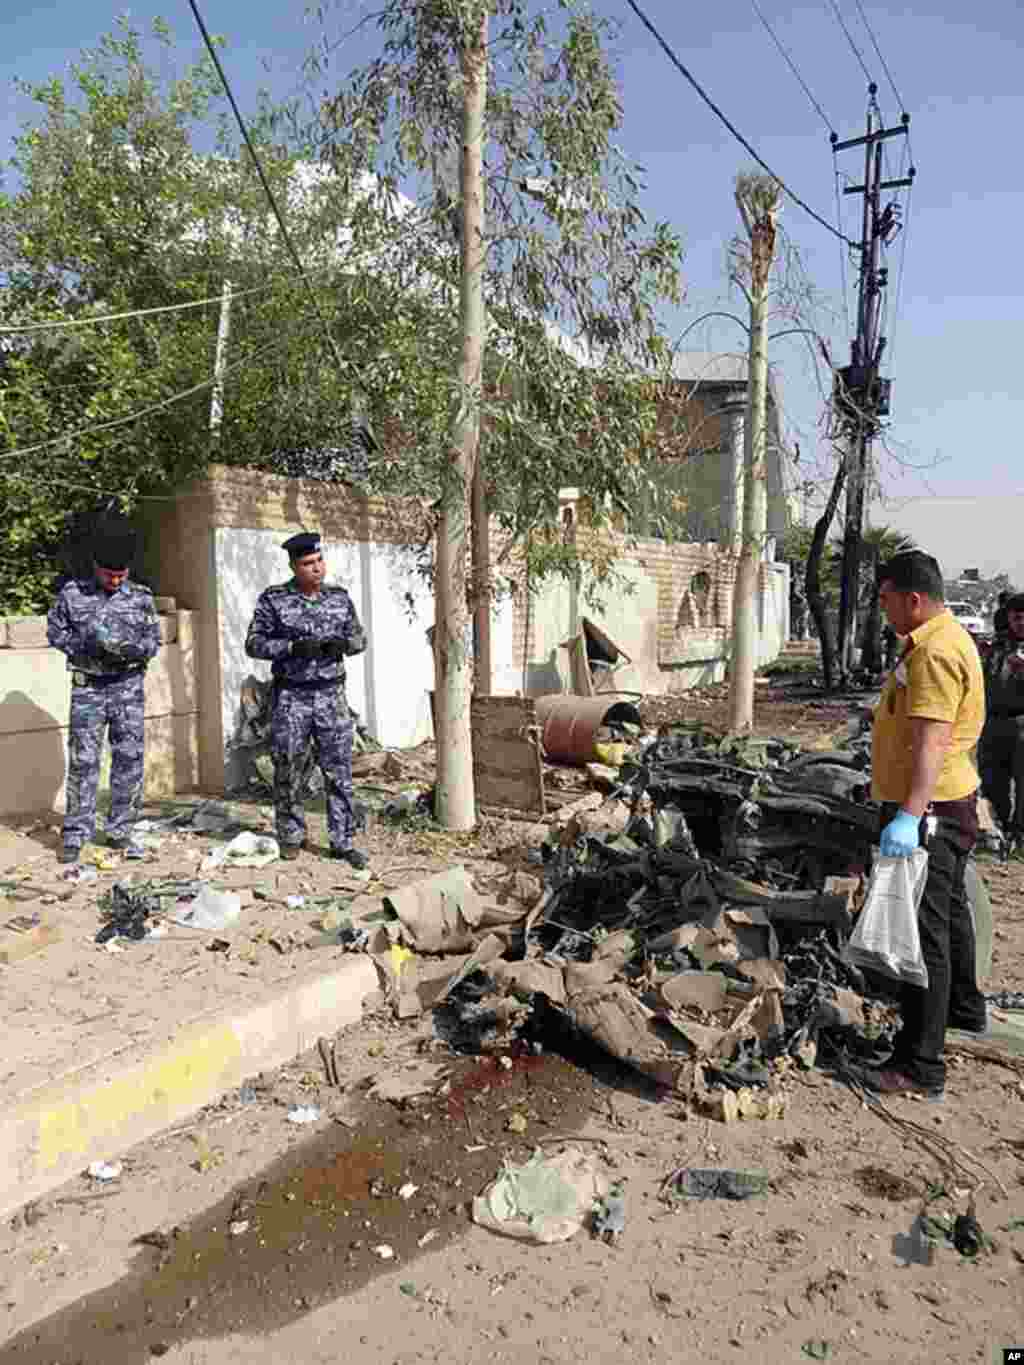 Iraqi inspect the remains of a vehicle at the scene of two car bombs in the northern oil-rich city of Kirkuk, which left several people dead, April 19, 2012. (AFP)